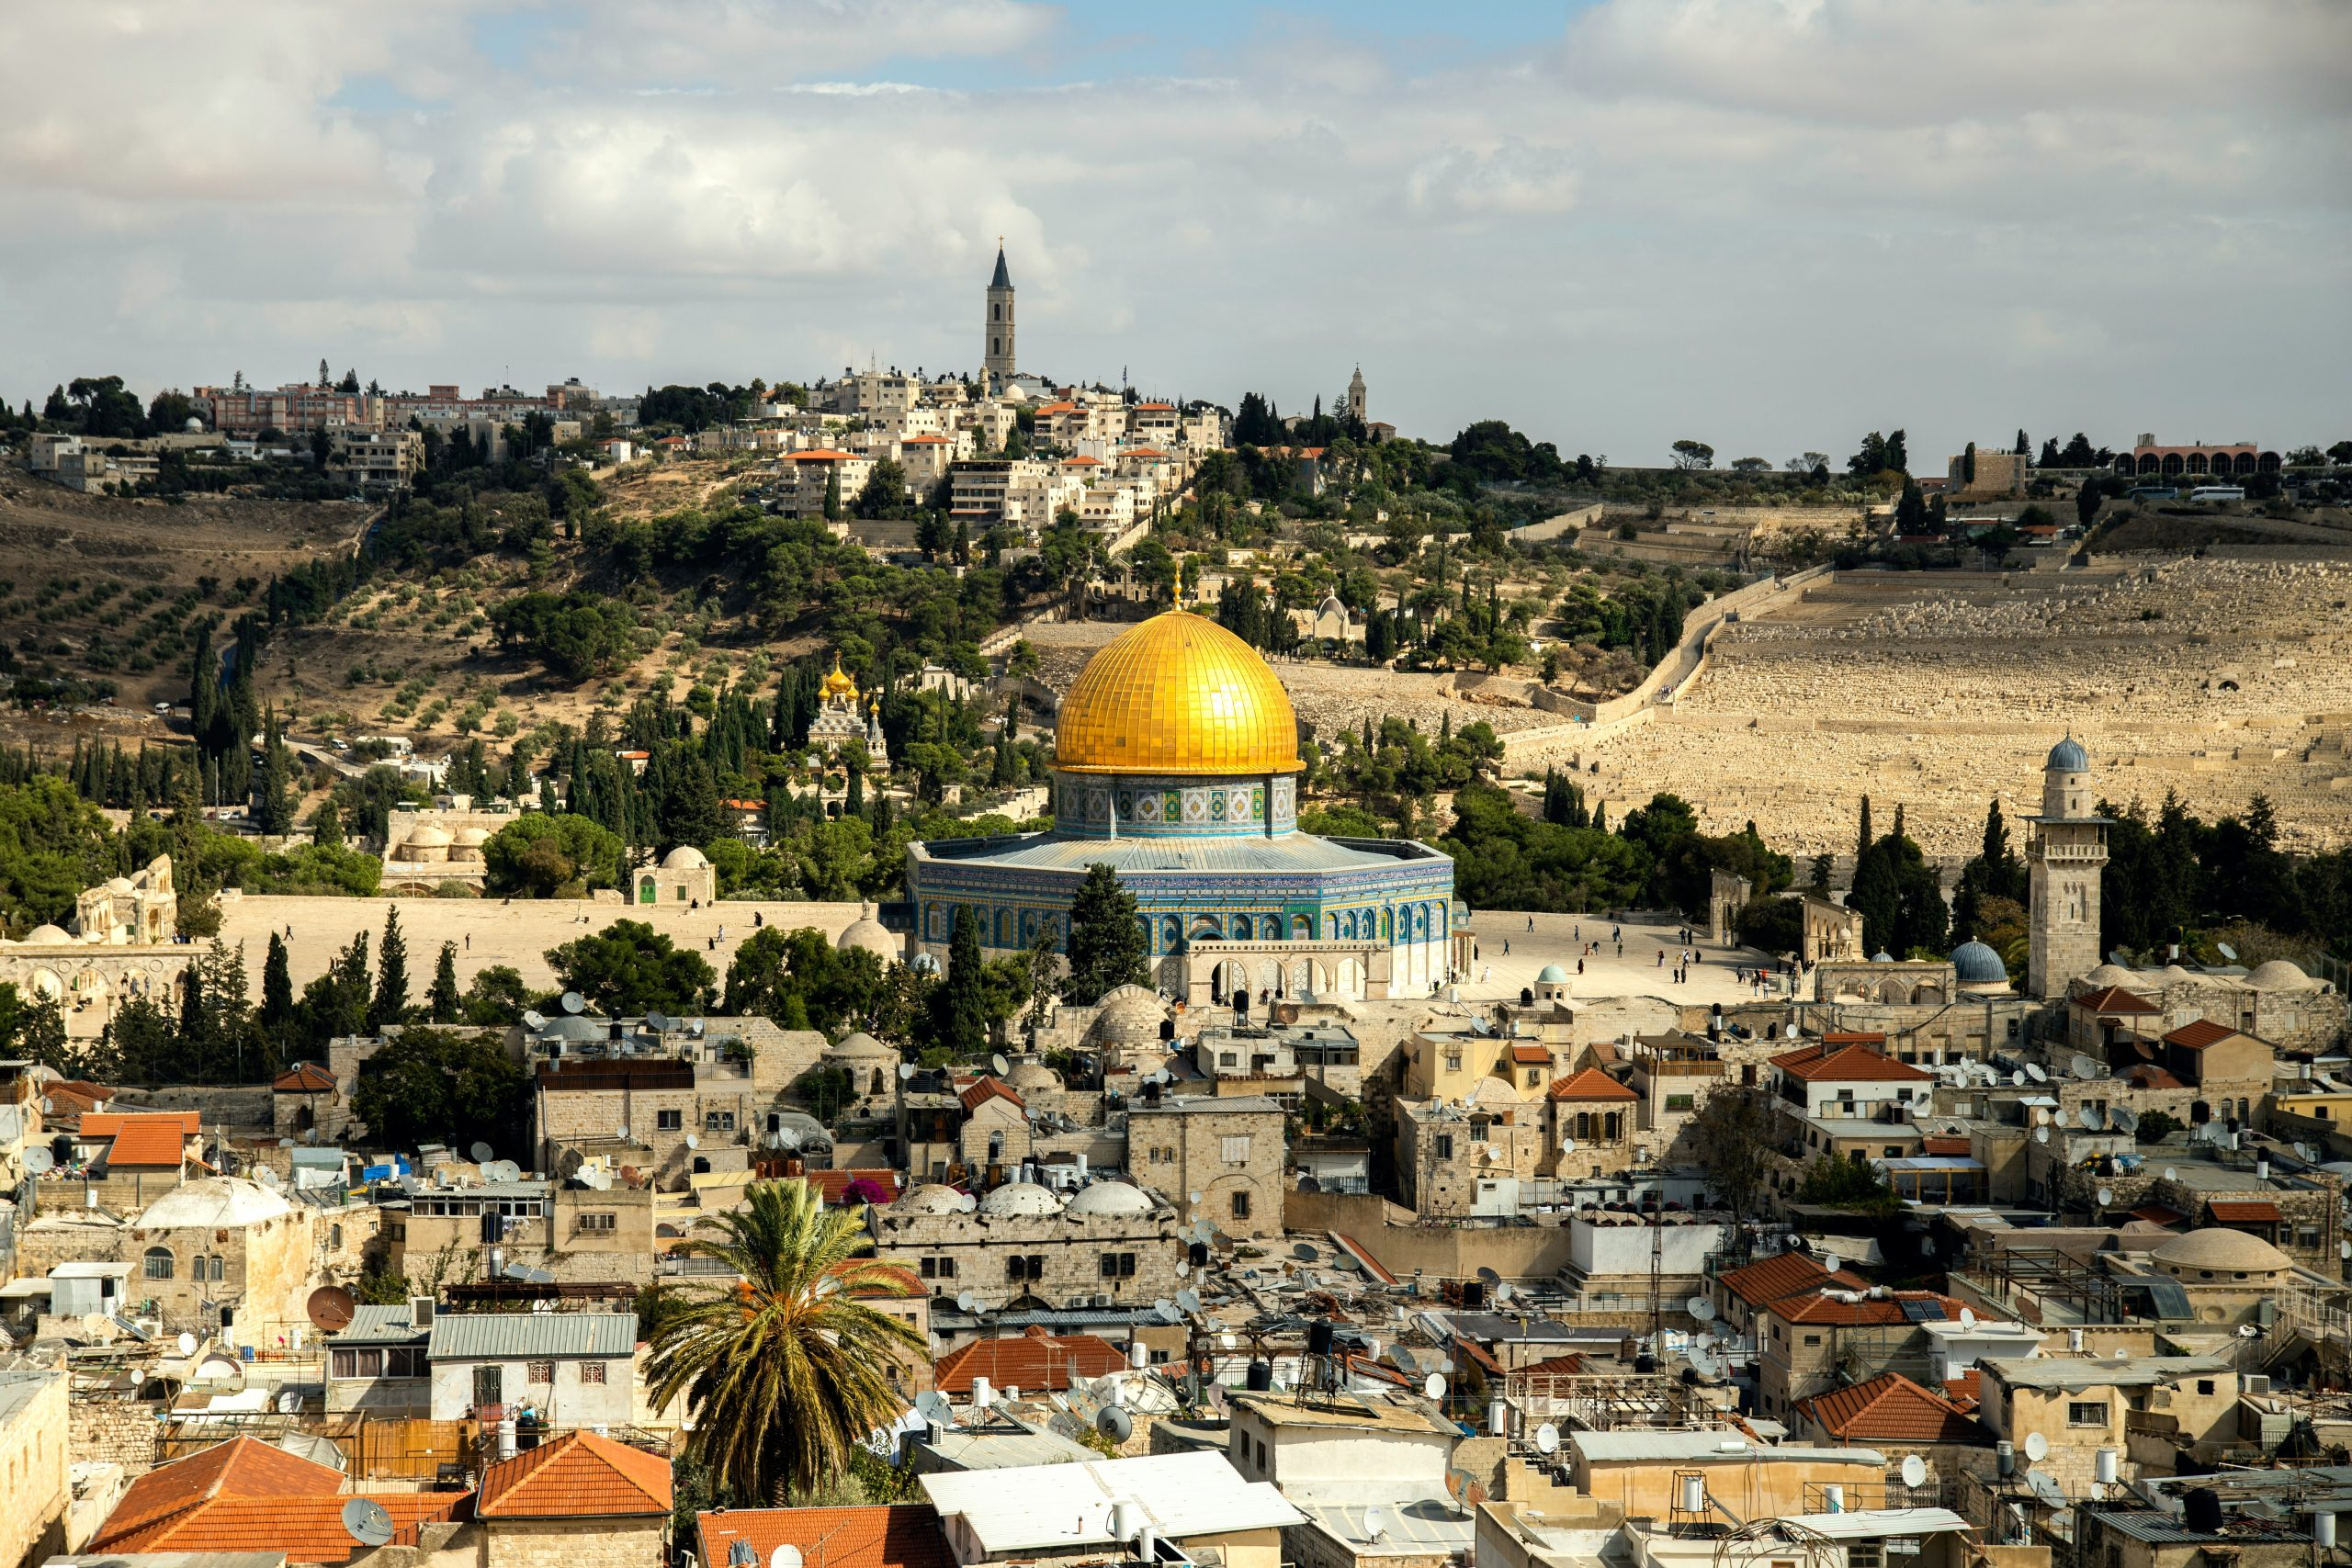 Ontological Insecurity: A Case Study on Israeli-Palestinian Conflict in Jerusalem